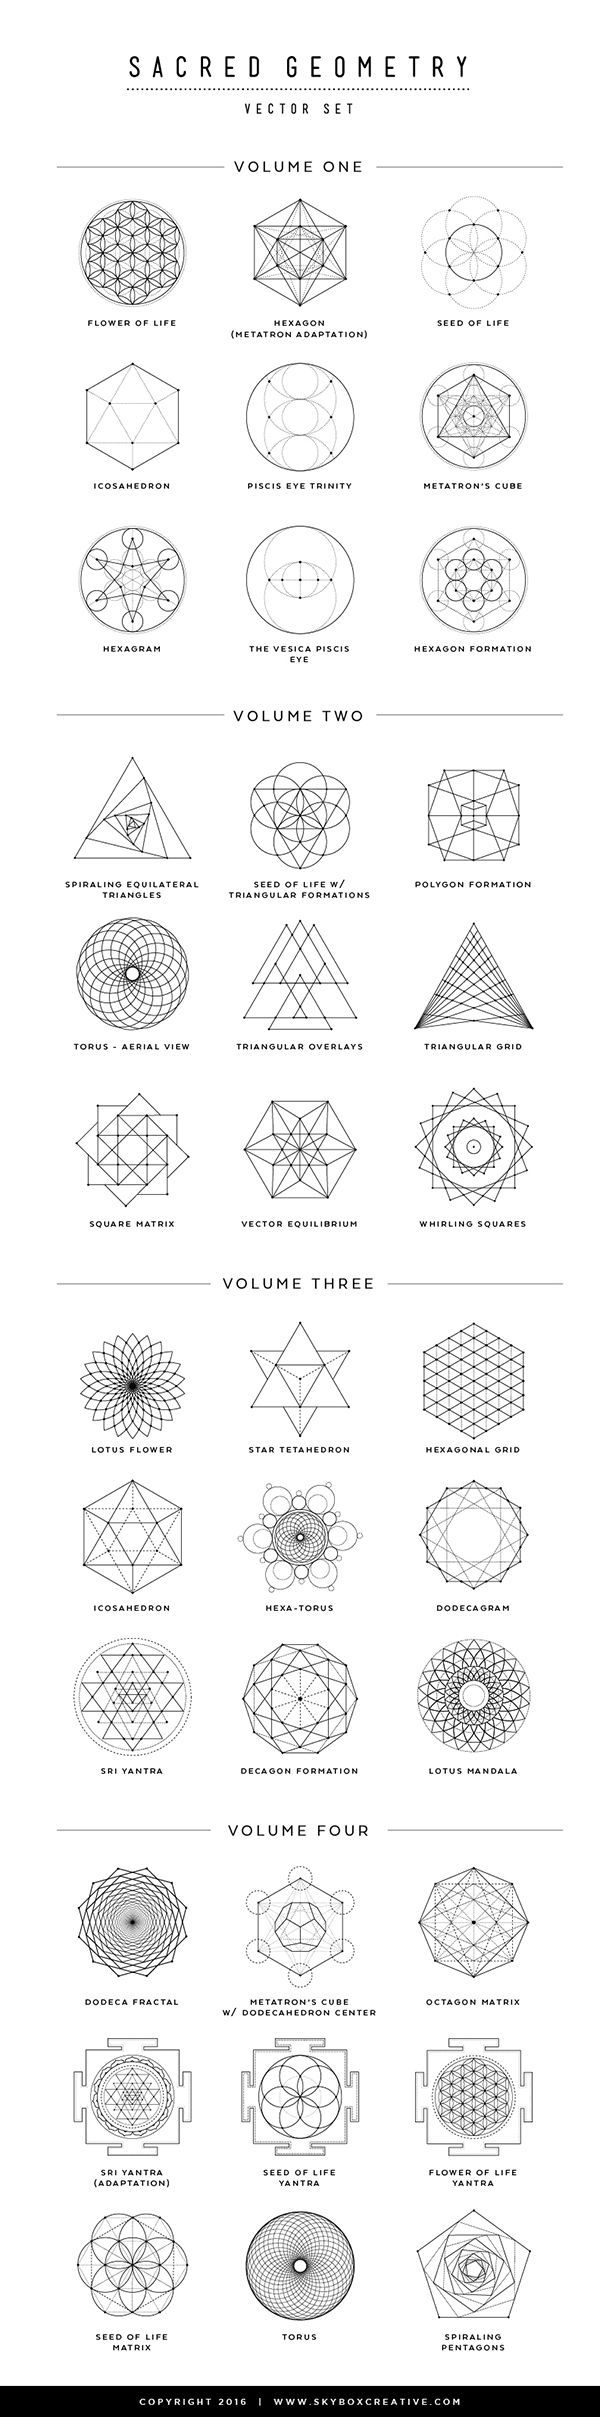 839 best sacred geometry images on pinterest sacred geometry skyboxcreative i created this pdf guide and short video to go over a few sacred geometry symbols their names and meanings learn more and how to create biocorpaavc Gallery